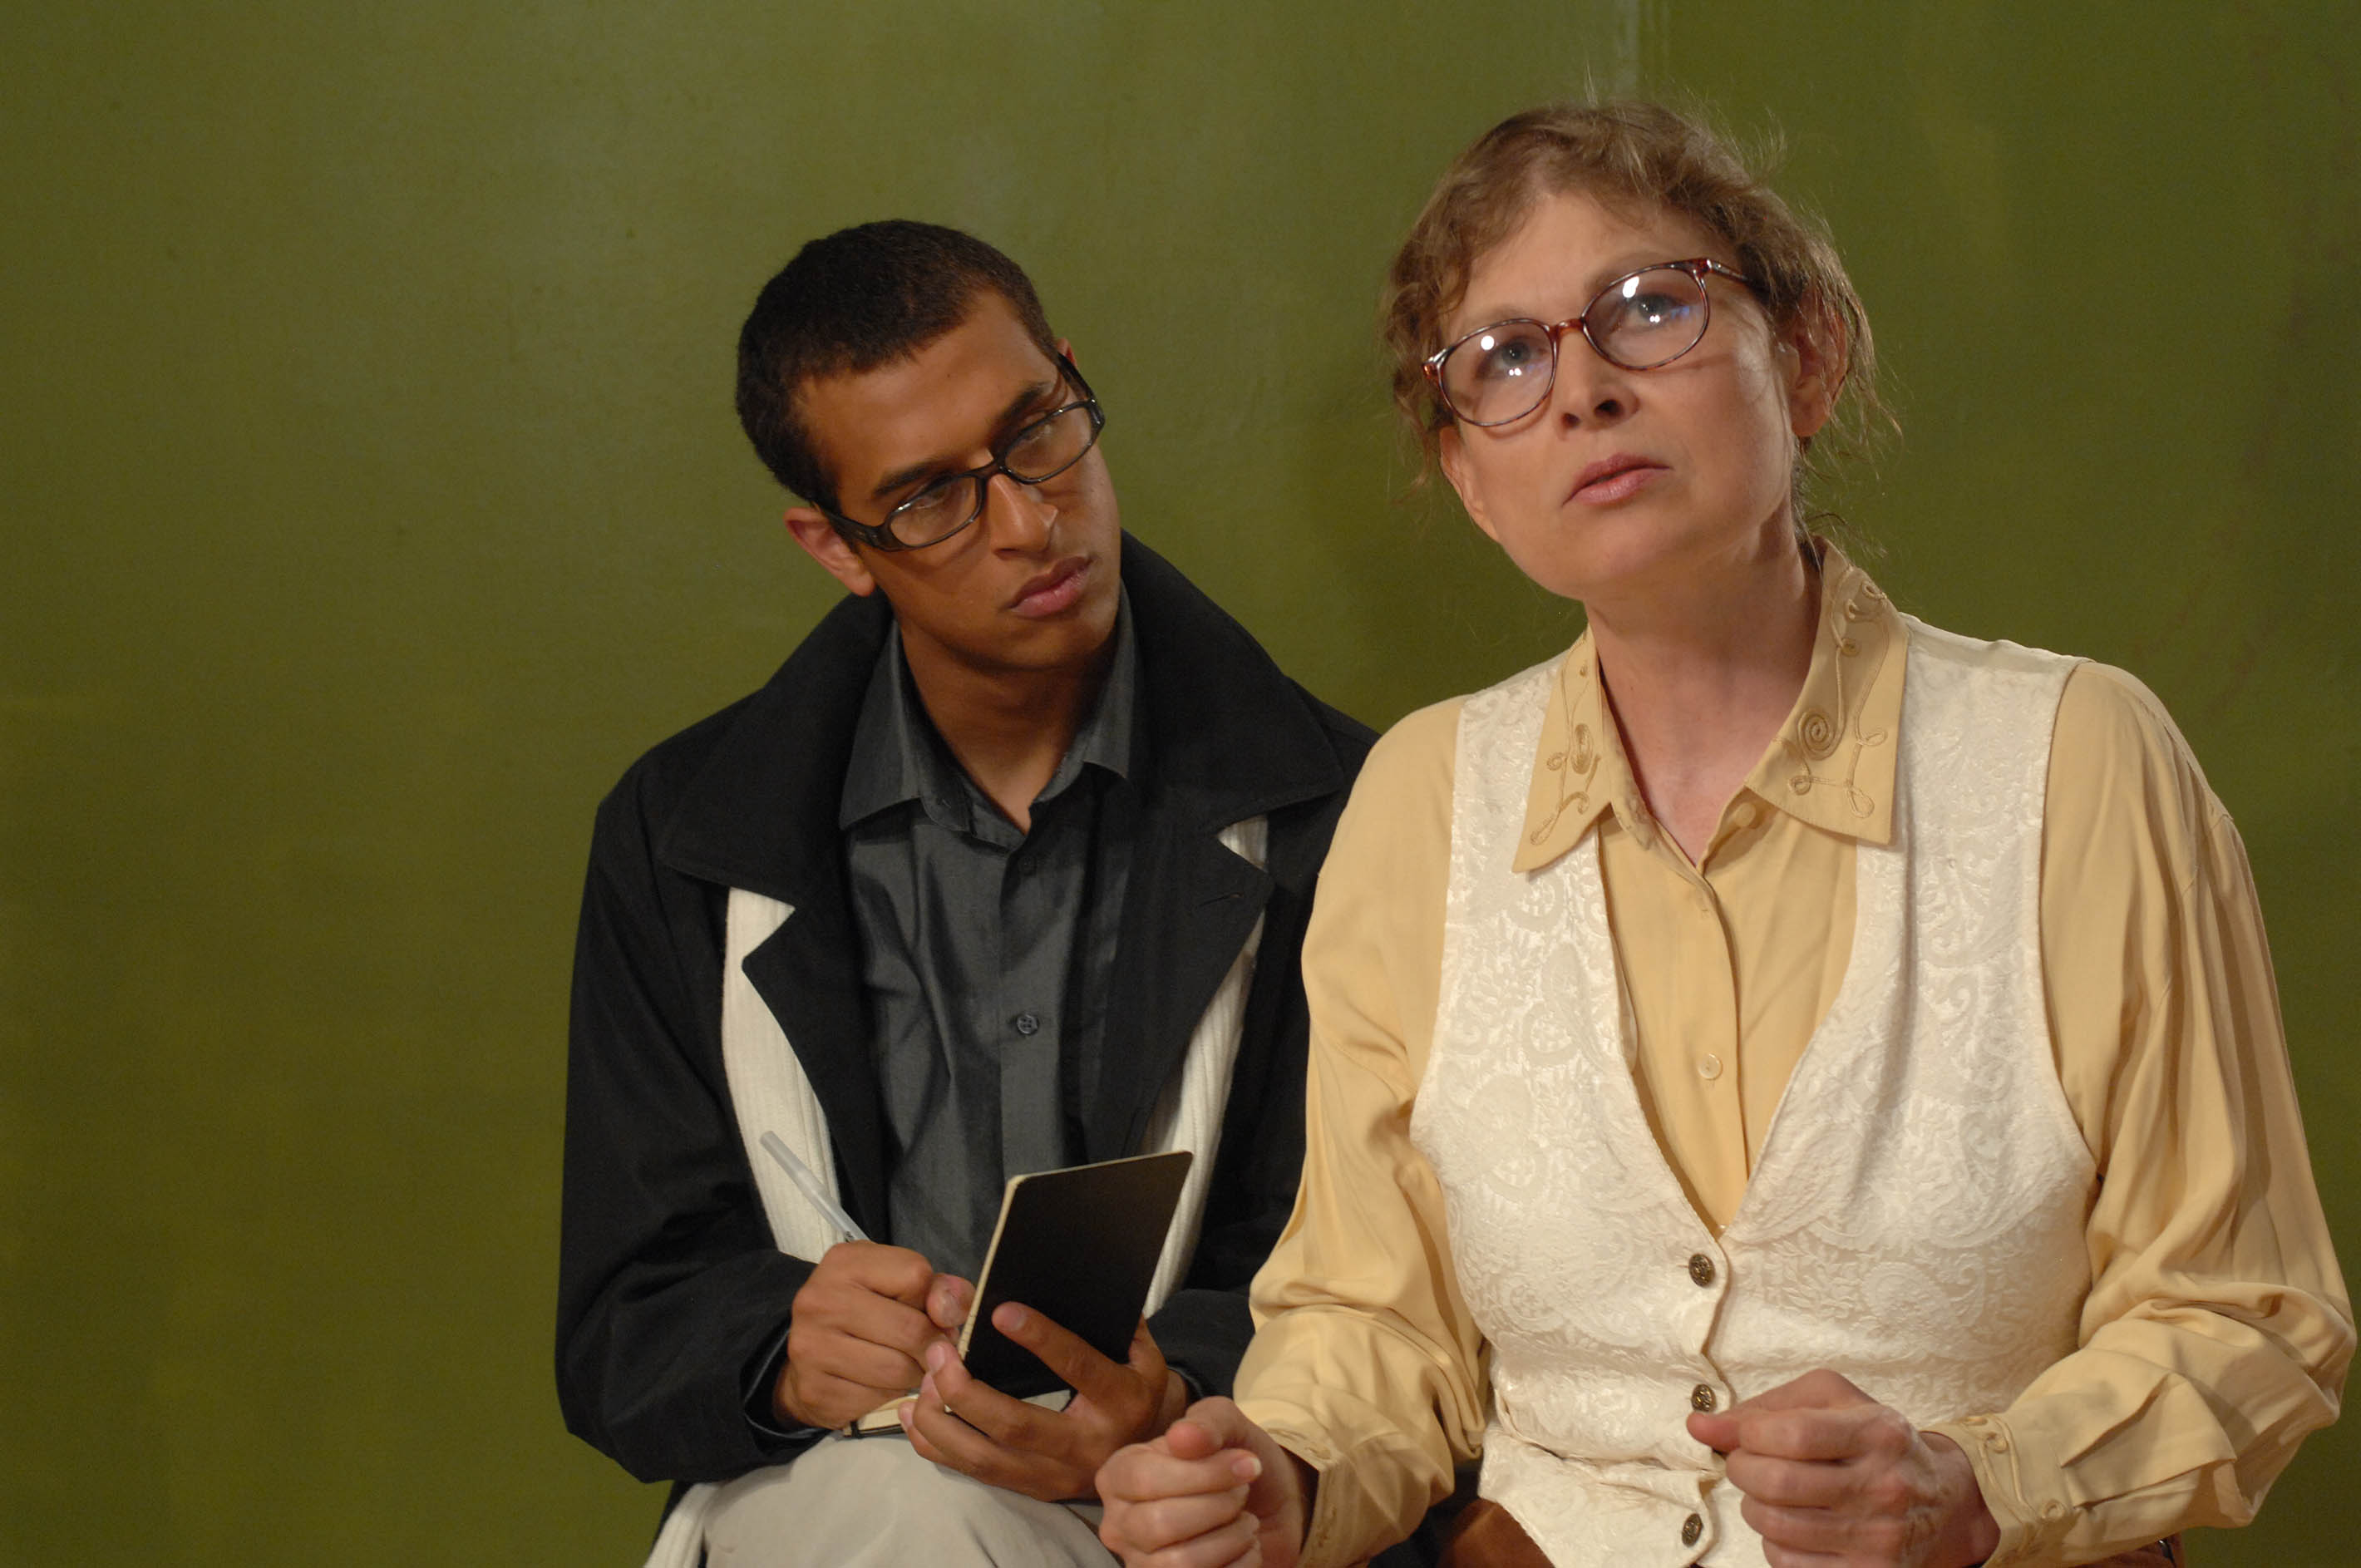 The Laramie Project: Ten Years Later An Epilogue by Jesse Ontiveros